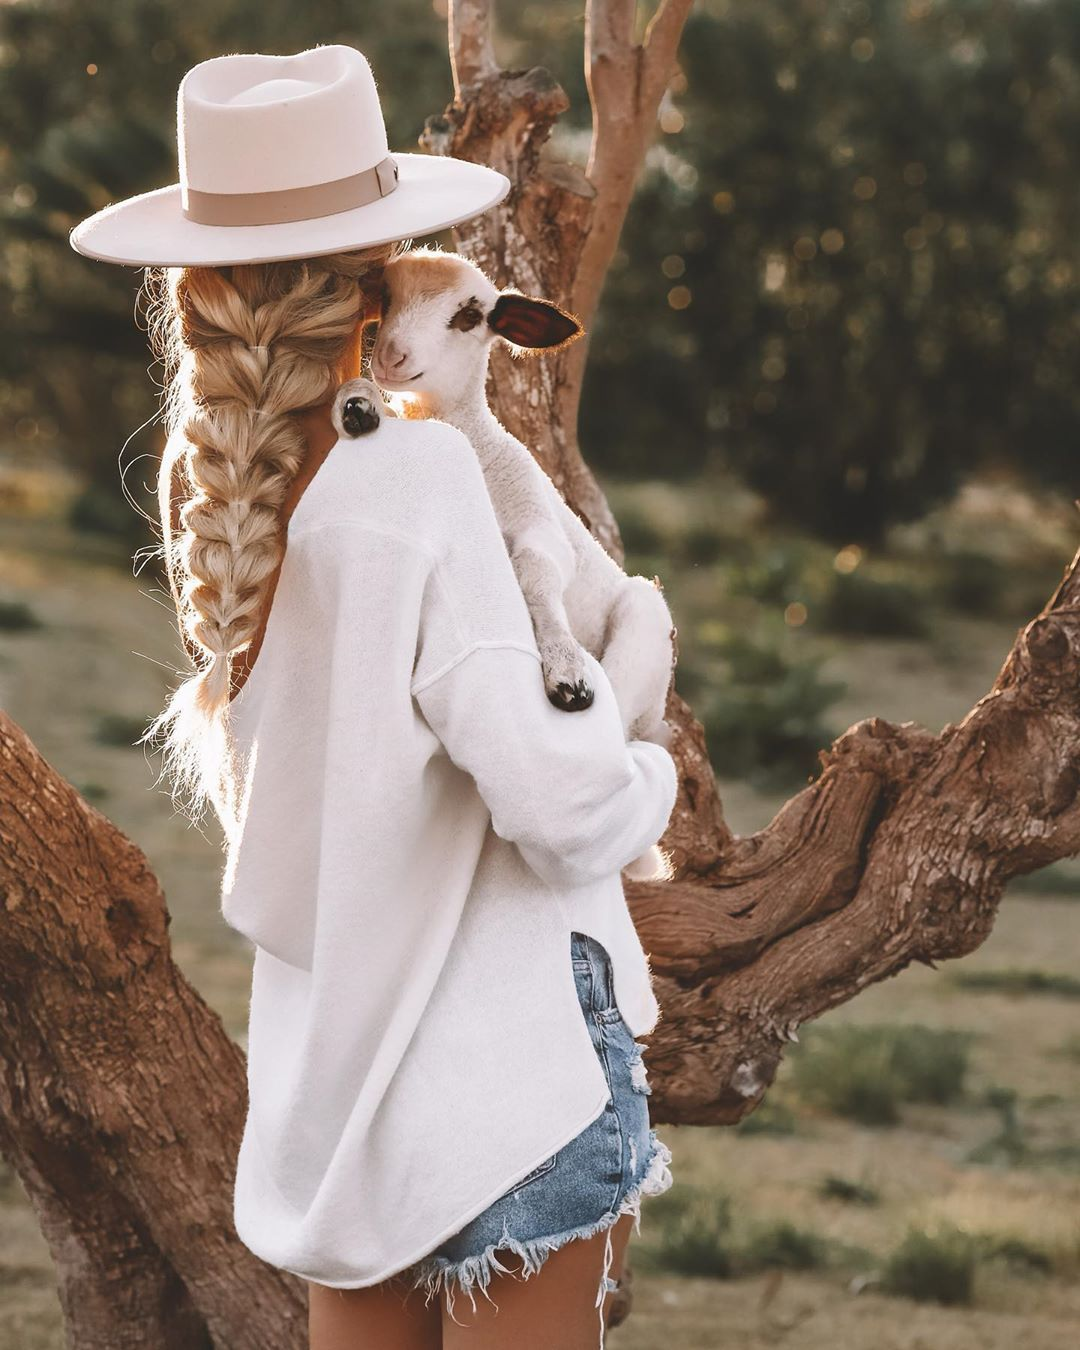 """➳ Travel ➳ Boho ➳ Fashion on Instagram: """"werbung wg.verlinkung / tagged accounts. . Cozy mood on🐑💕. Cuddle time is my favourite time. . How was your day? It's already little…"""""""